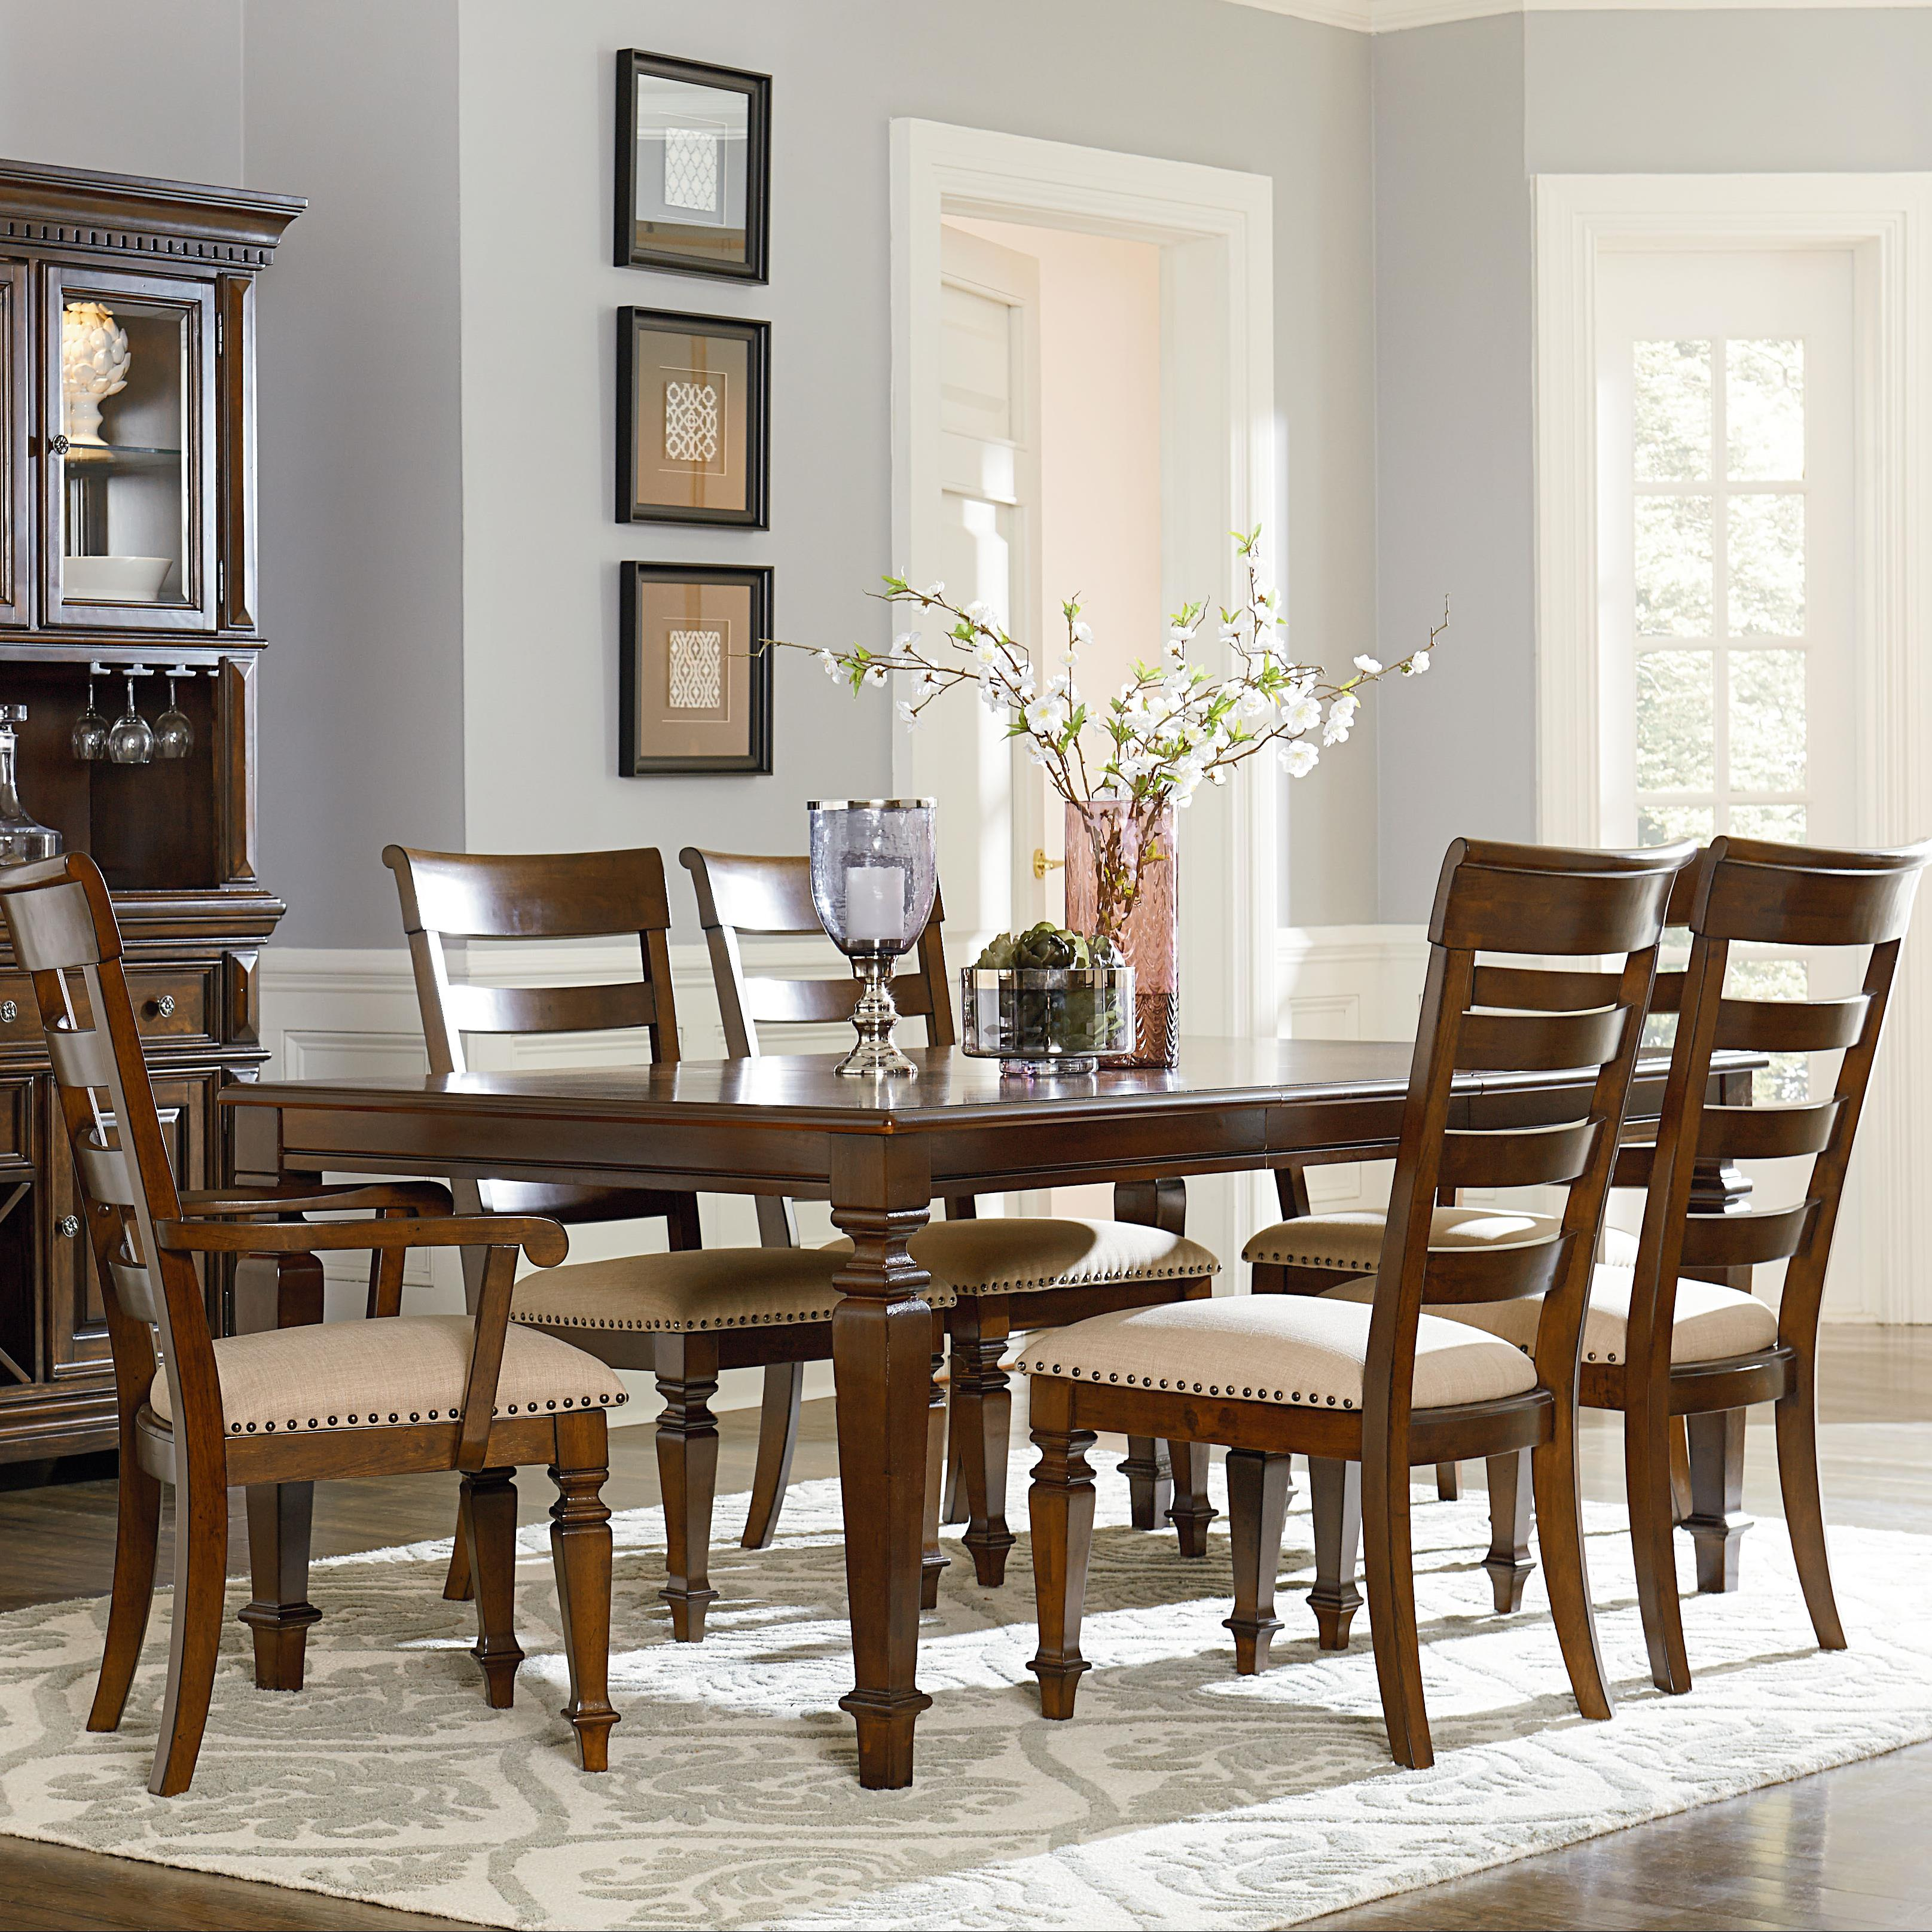 dining table with legs and 18 leaf by standard furniture wol